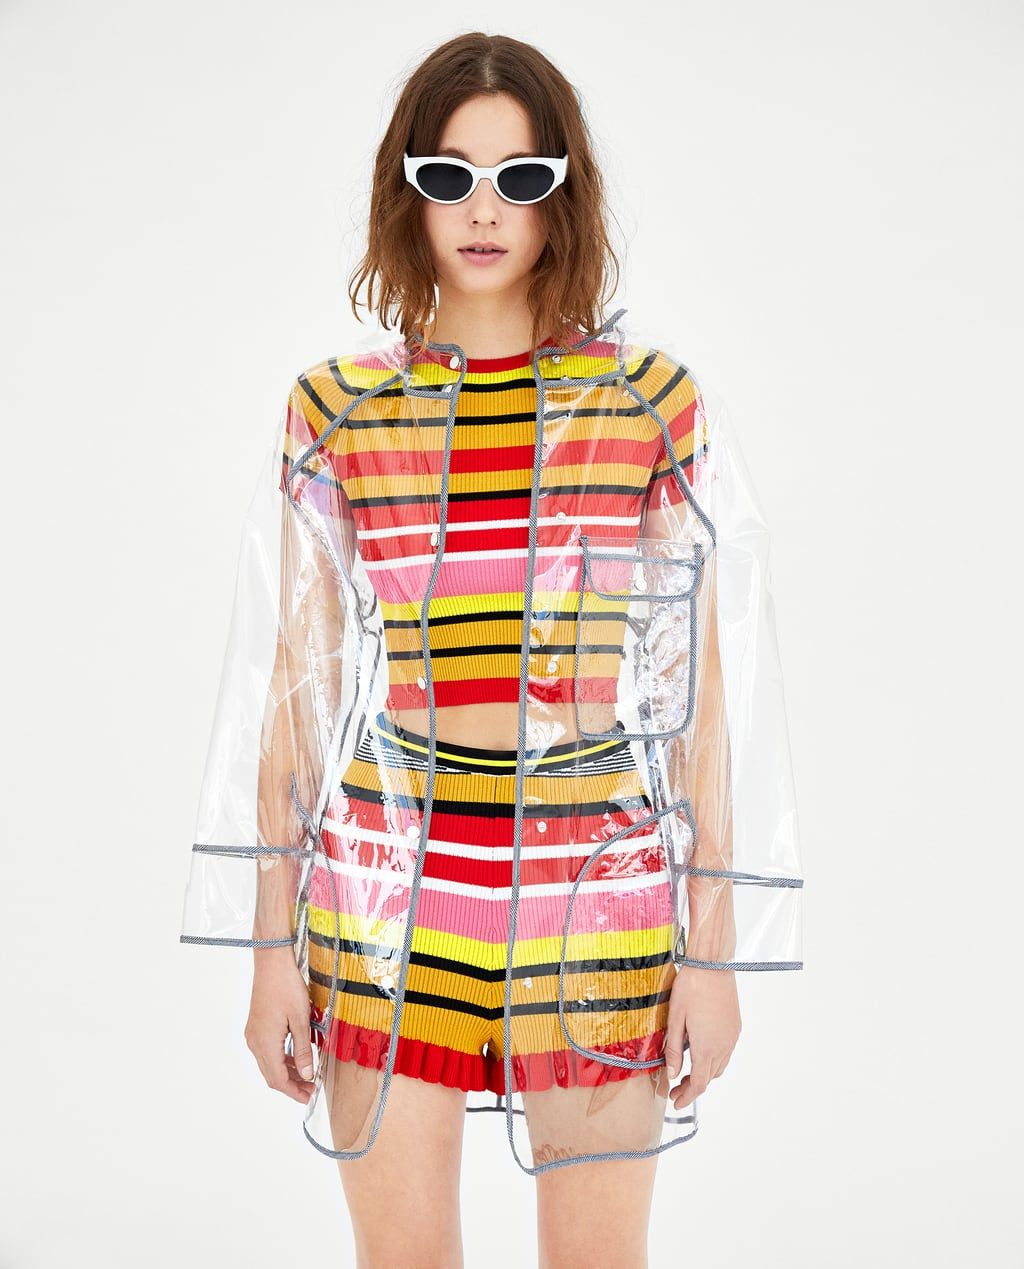 Of Repellent Zara Image 4 Water Raincoat From In Transparent dCshrQt